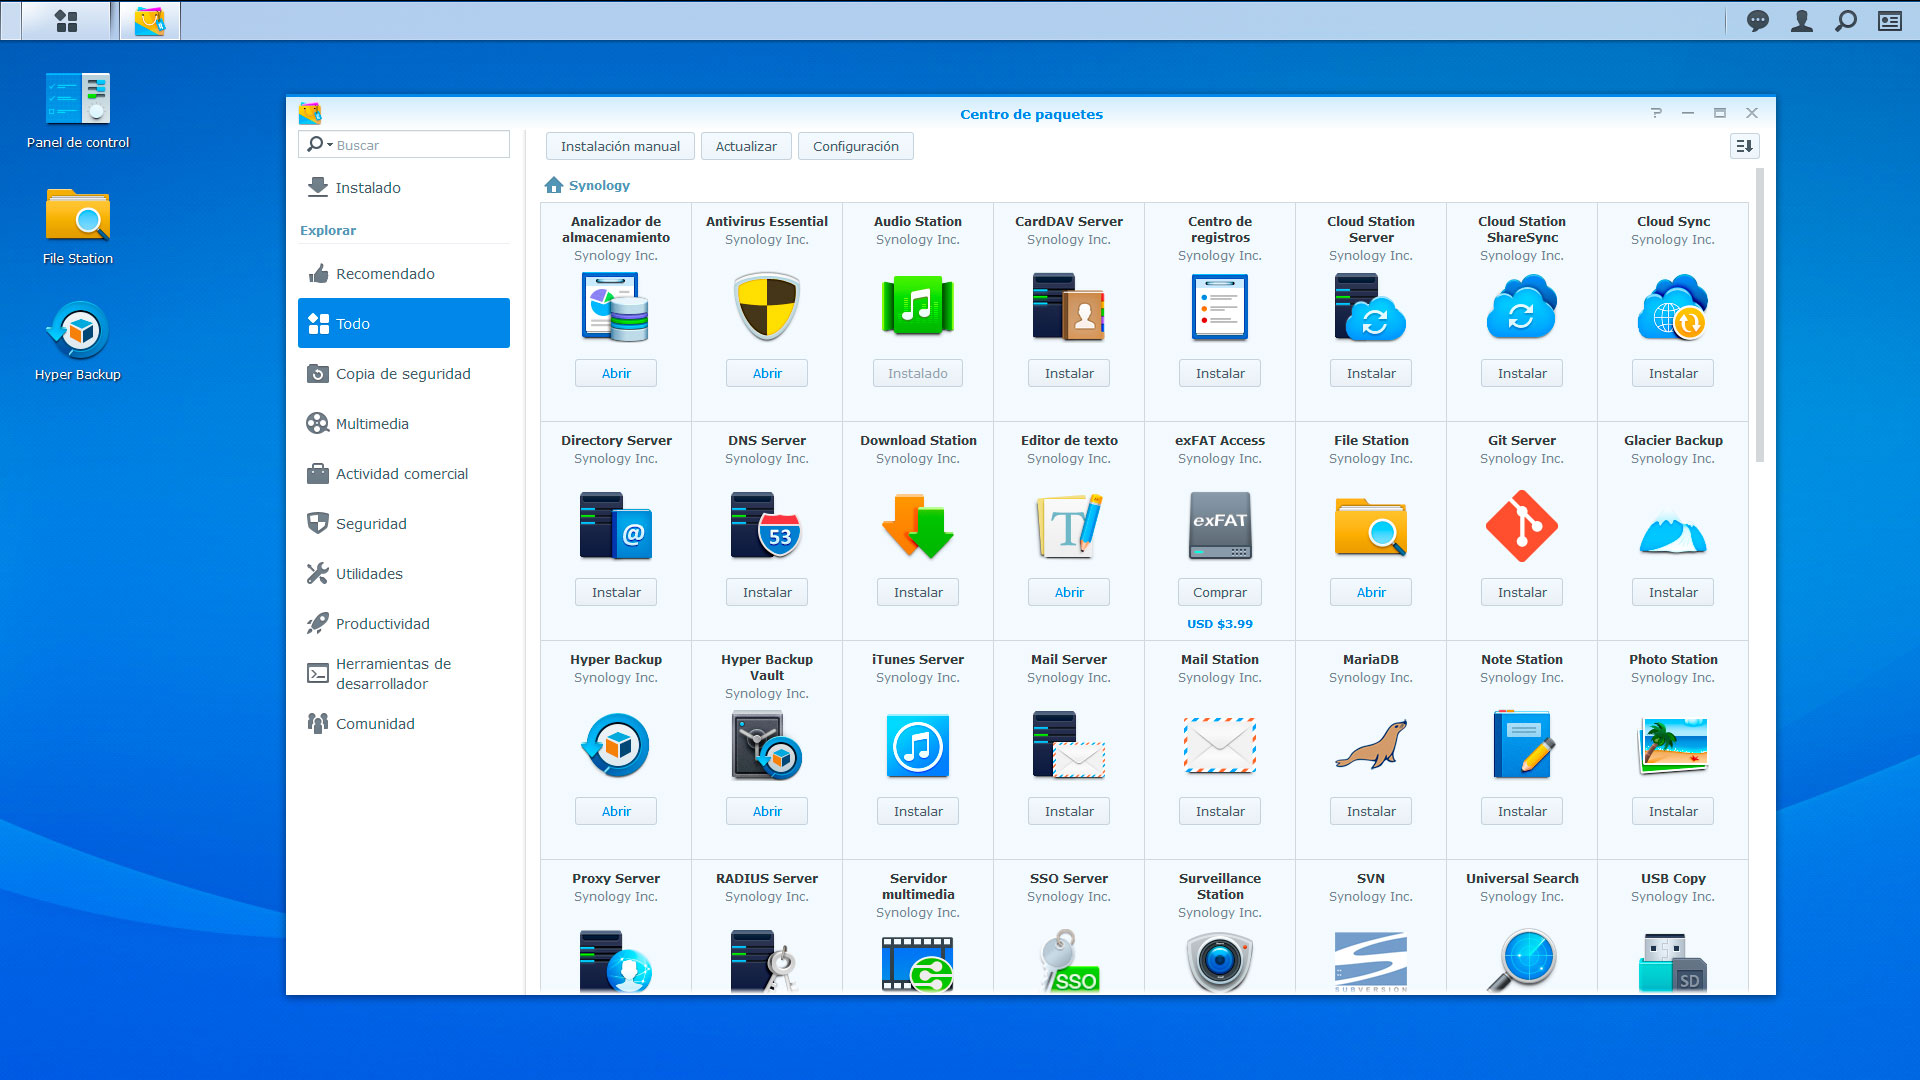 Paquetes synology